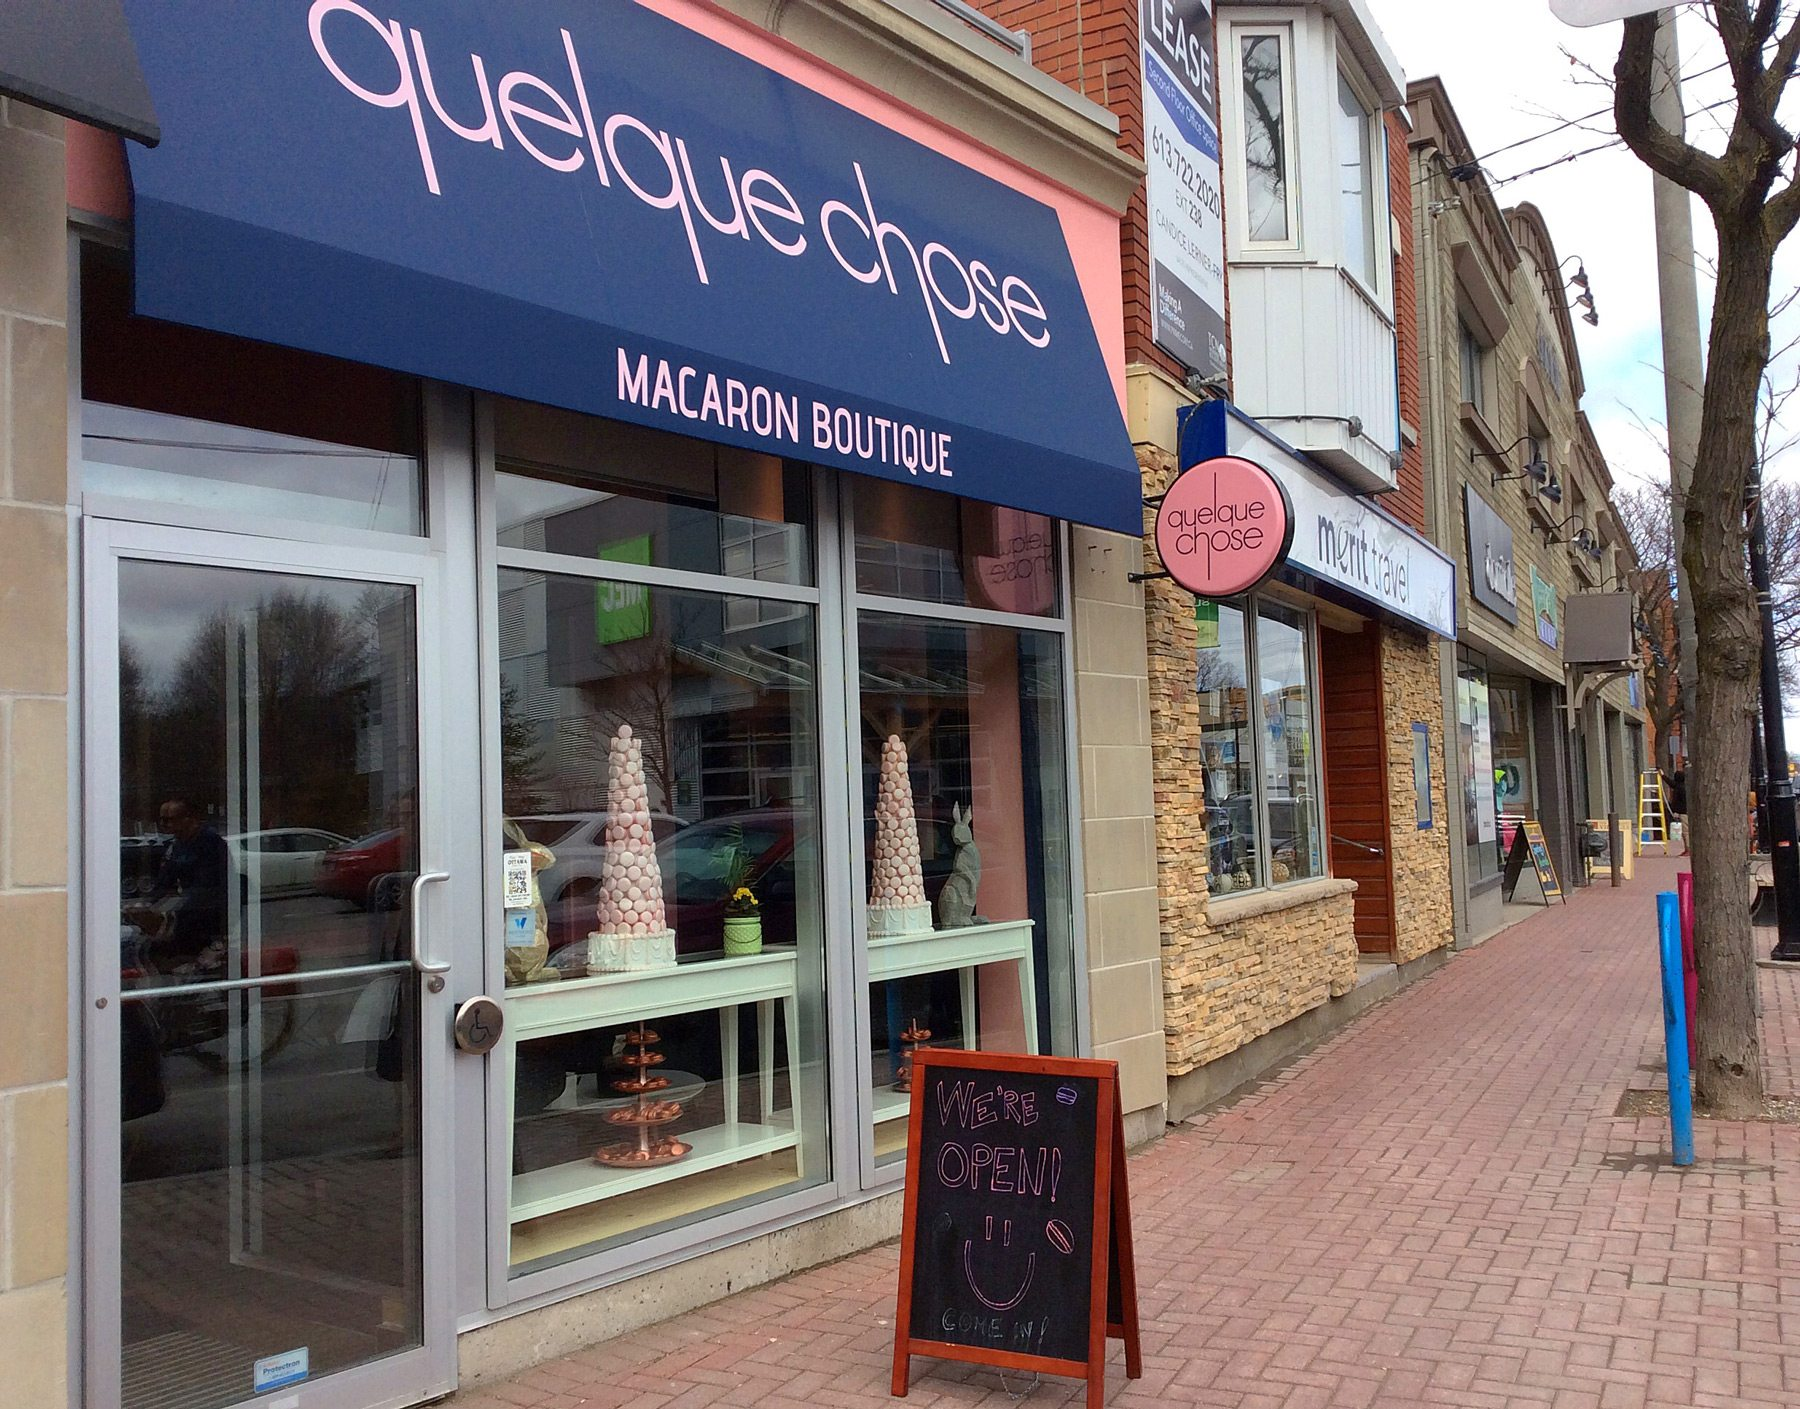 The store, located directly across Richmond Road from MEC, attracts passersby with macarons towers in the window